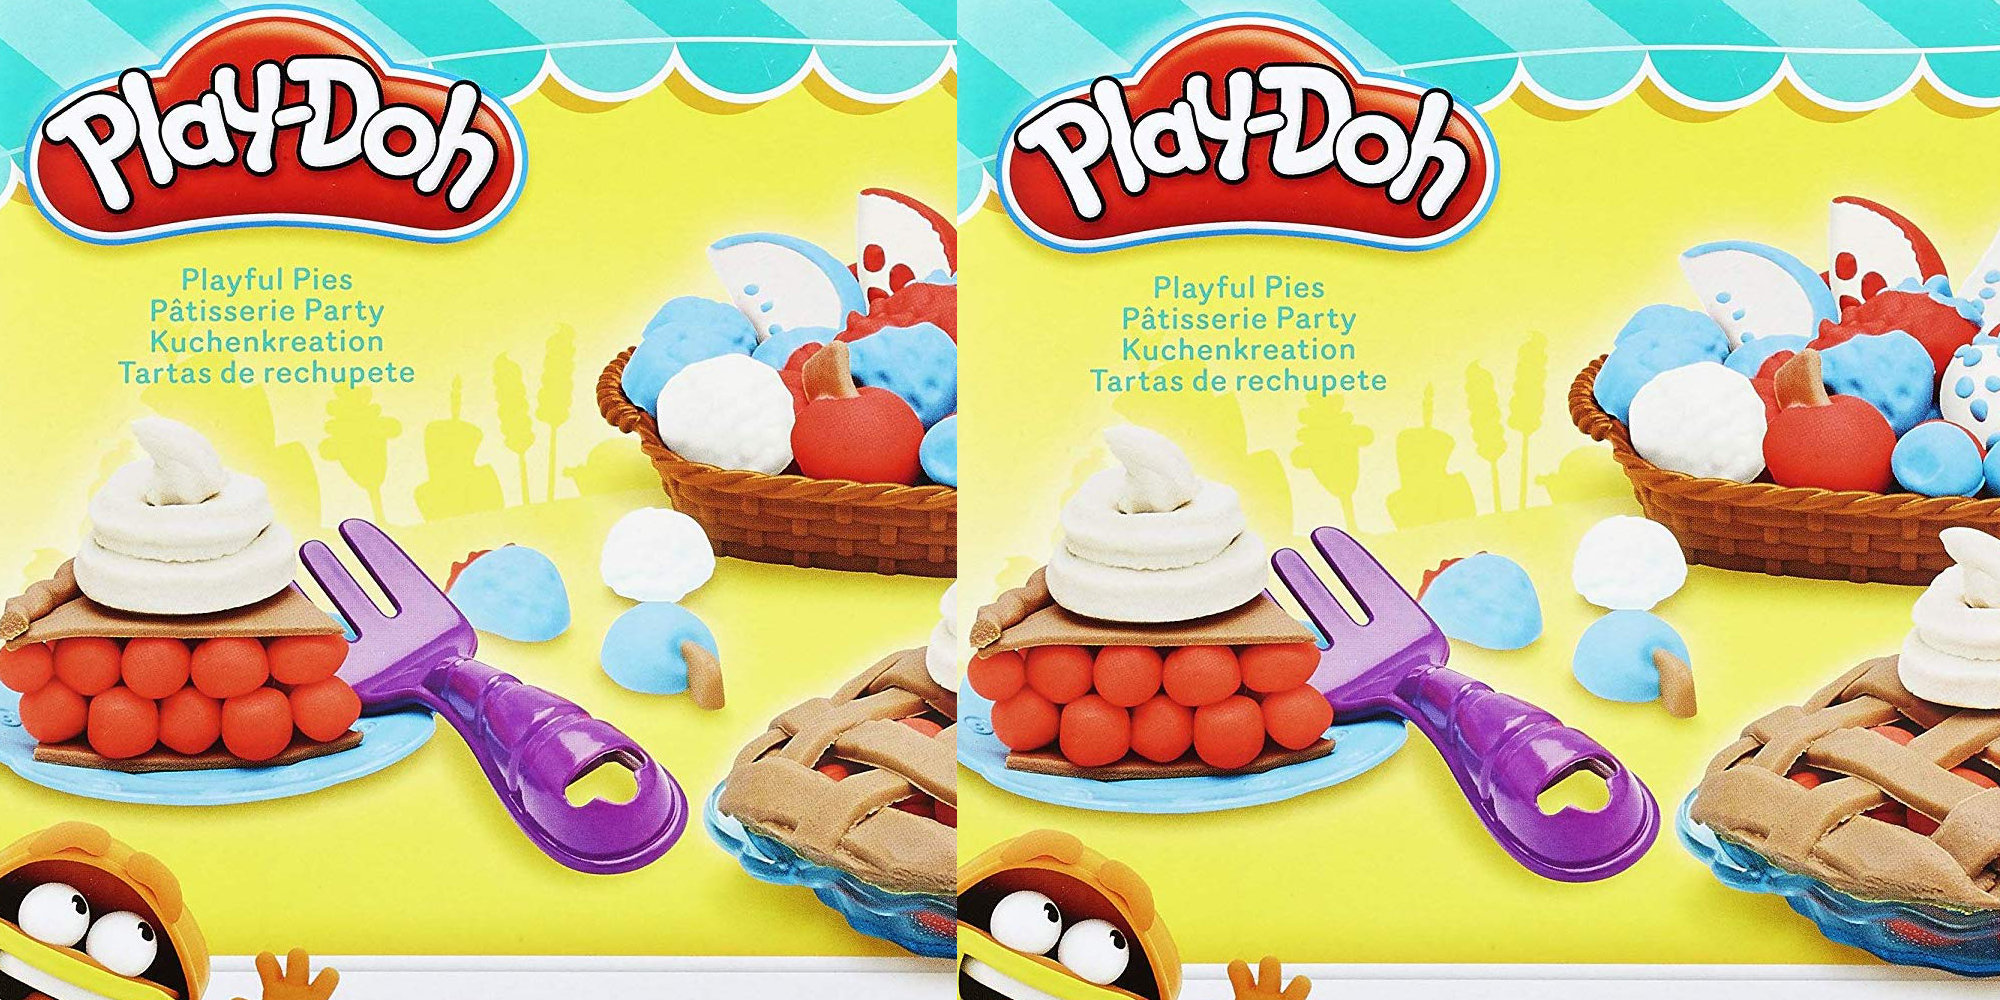 Scratch your next toddler gift off the list w/ this Play-Doh Playful Pies Set for $7 (30% off)